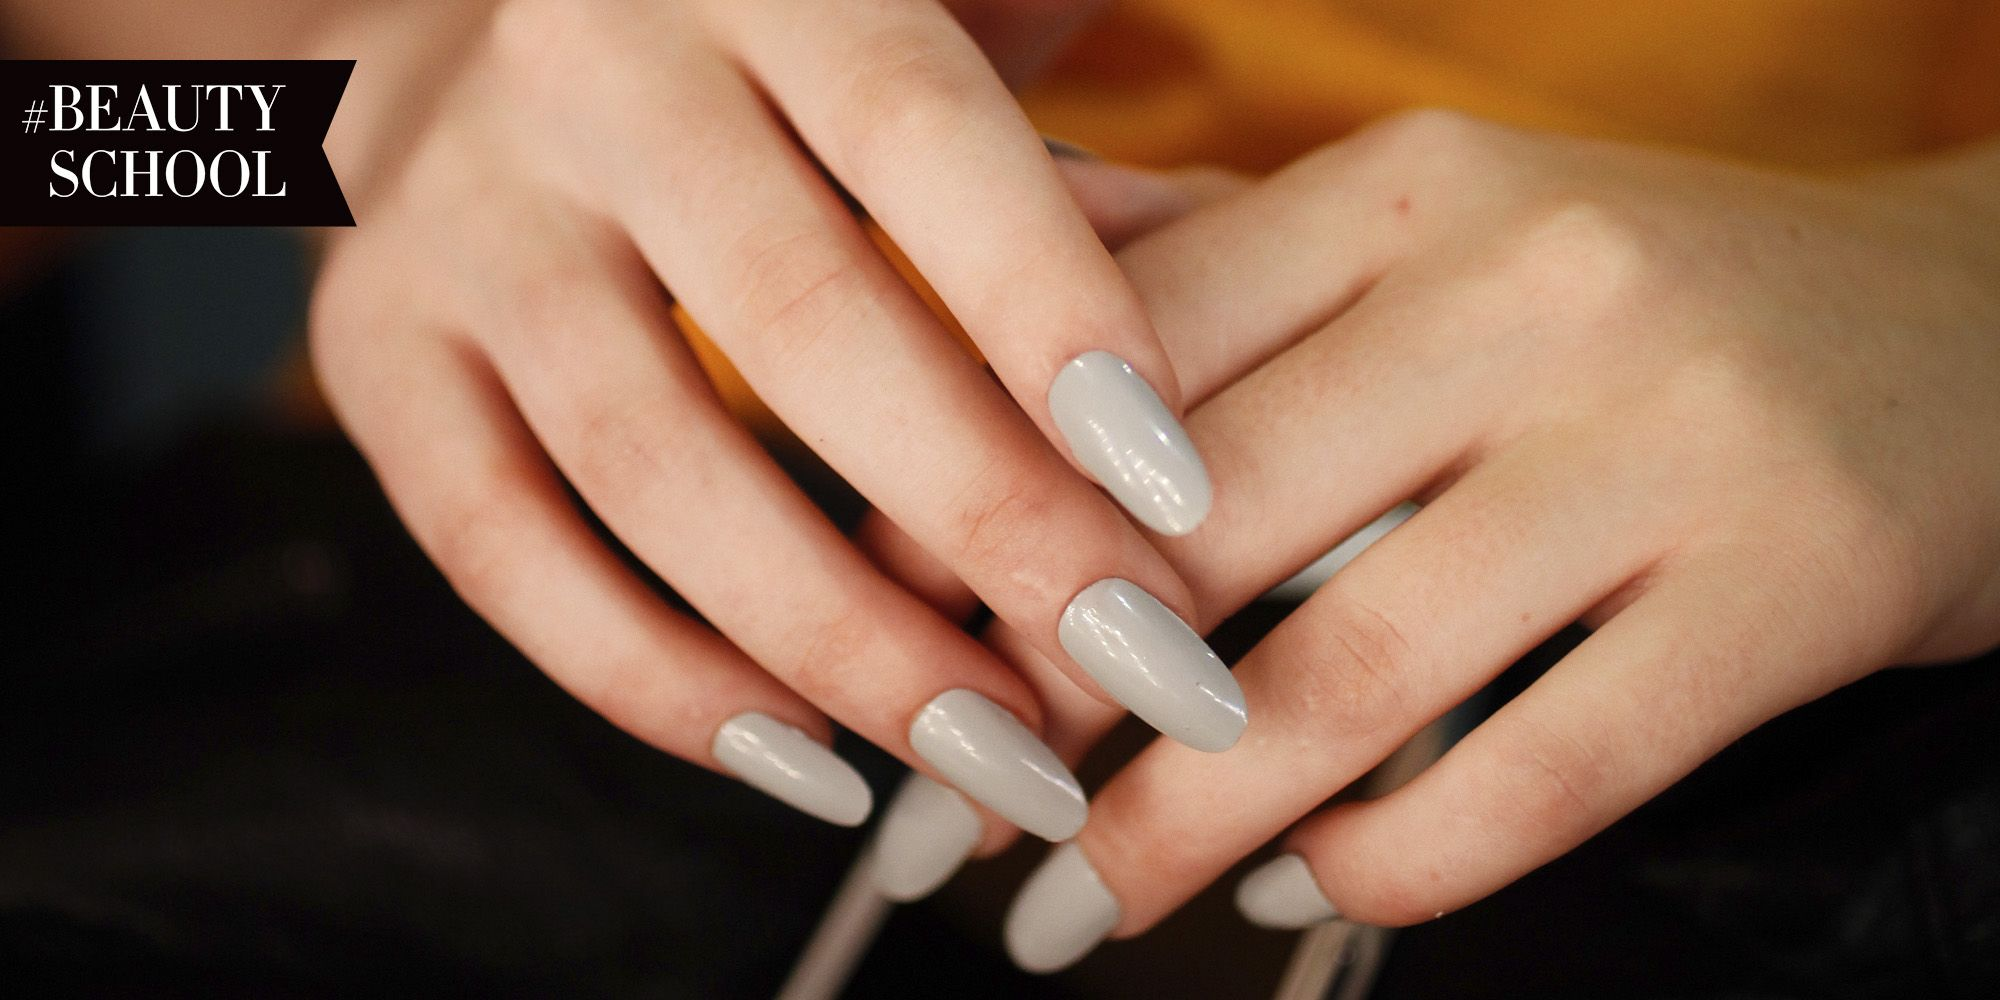 What to Do When Your Nail Is about to Break - How to Fix a Broken Nail